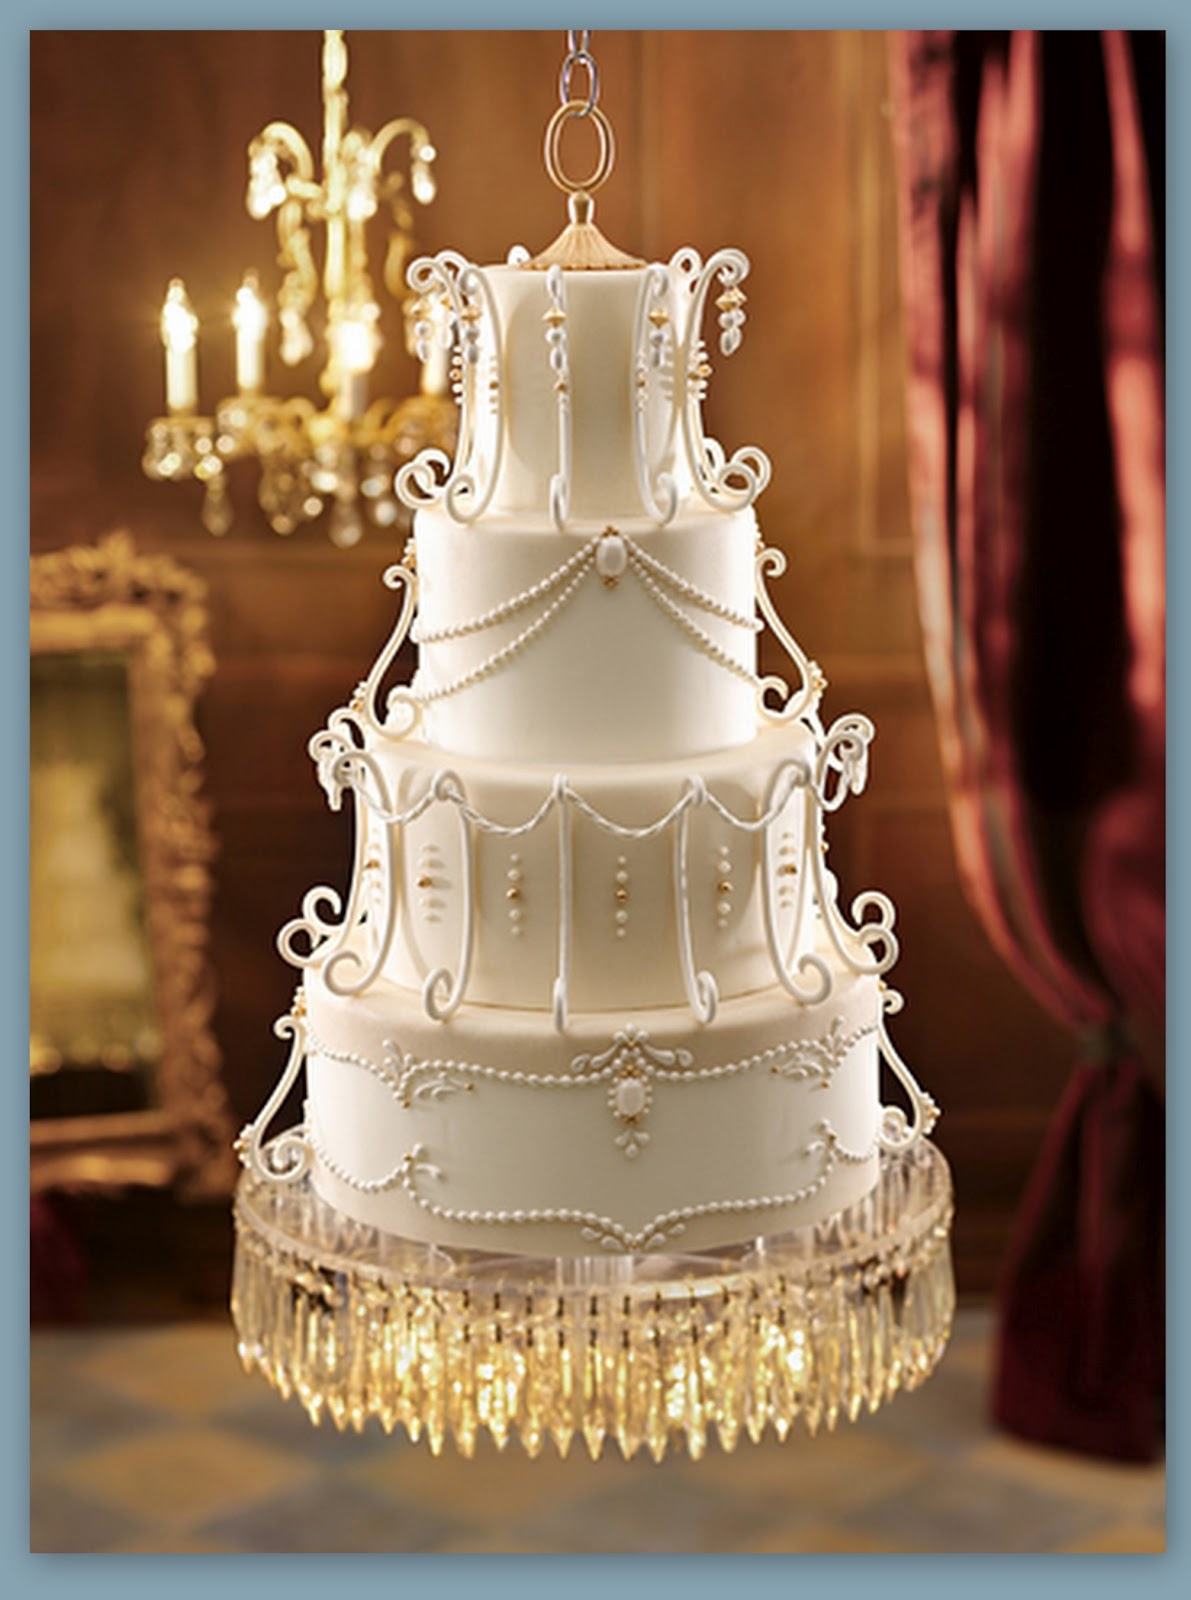 Wedding cake chandelier frame hanging chandelier wedding cake wedding cake chandelier frame on the budget vintage wedding style arubaitofo Image collections